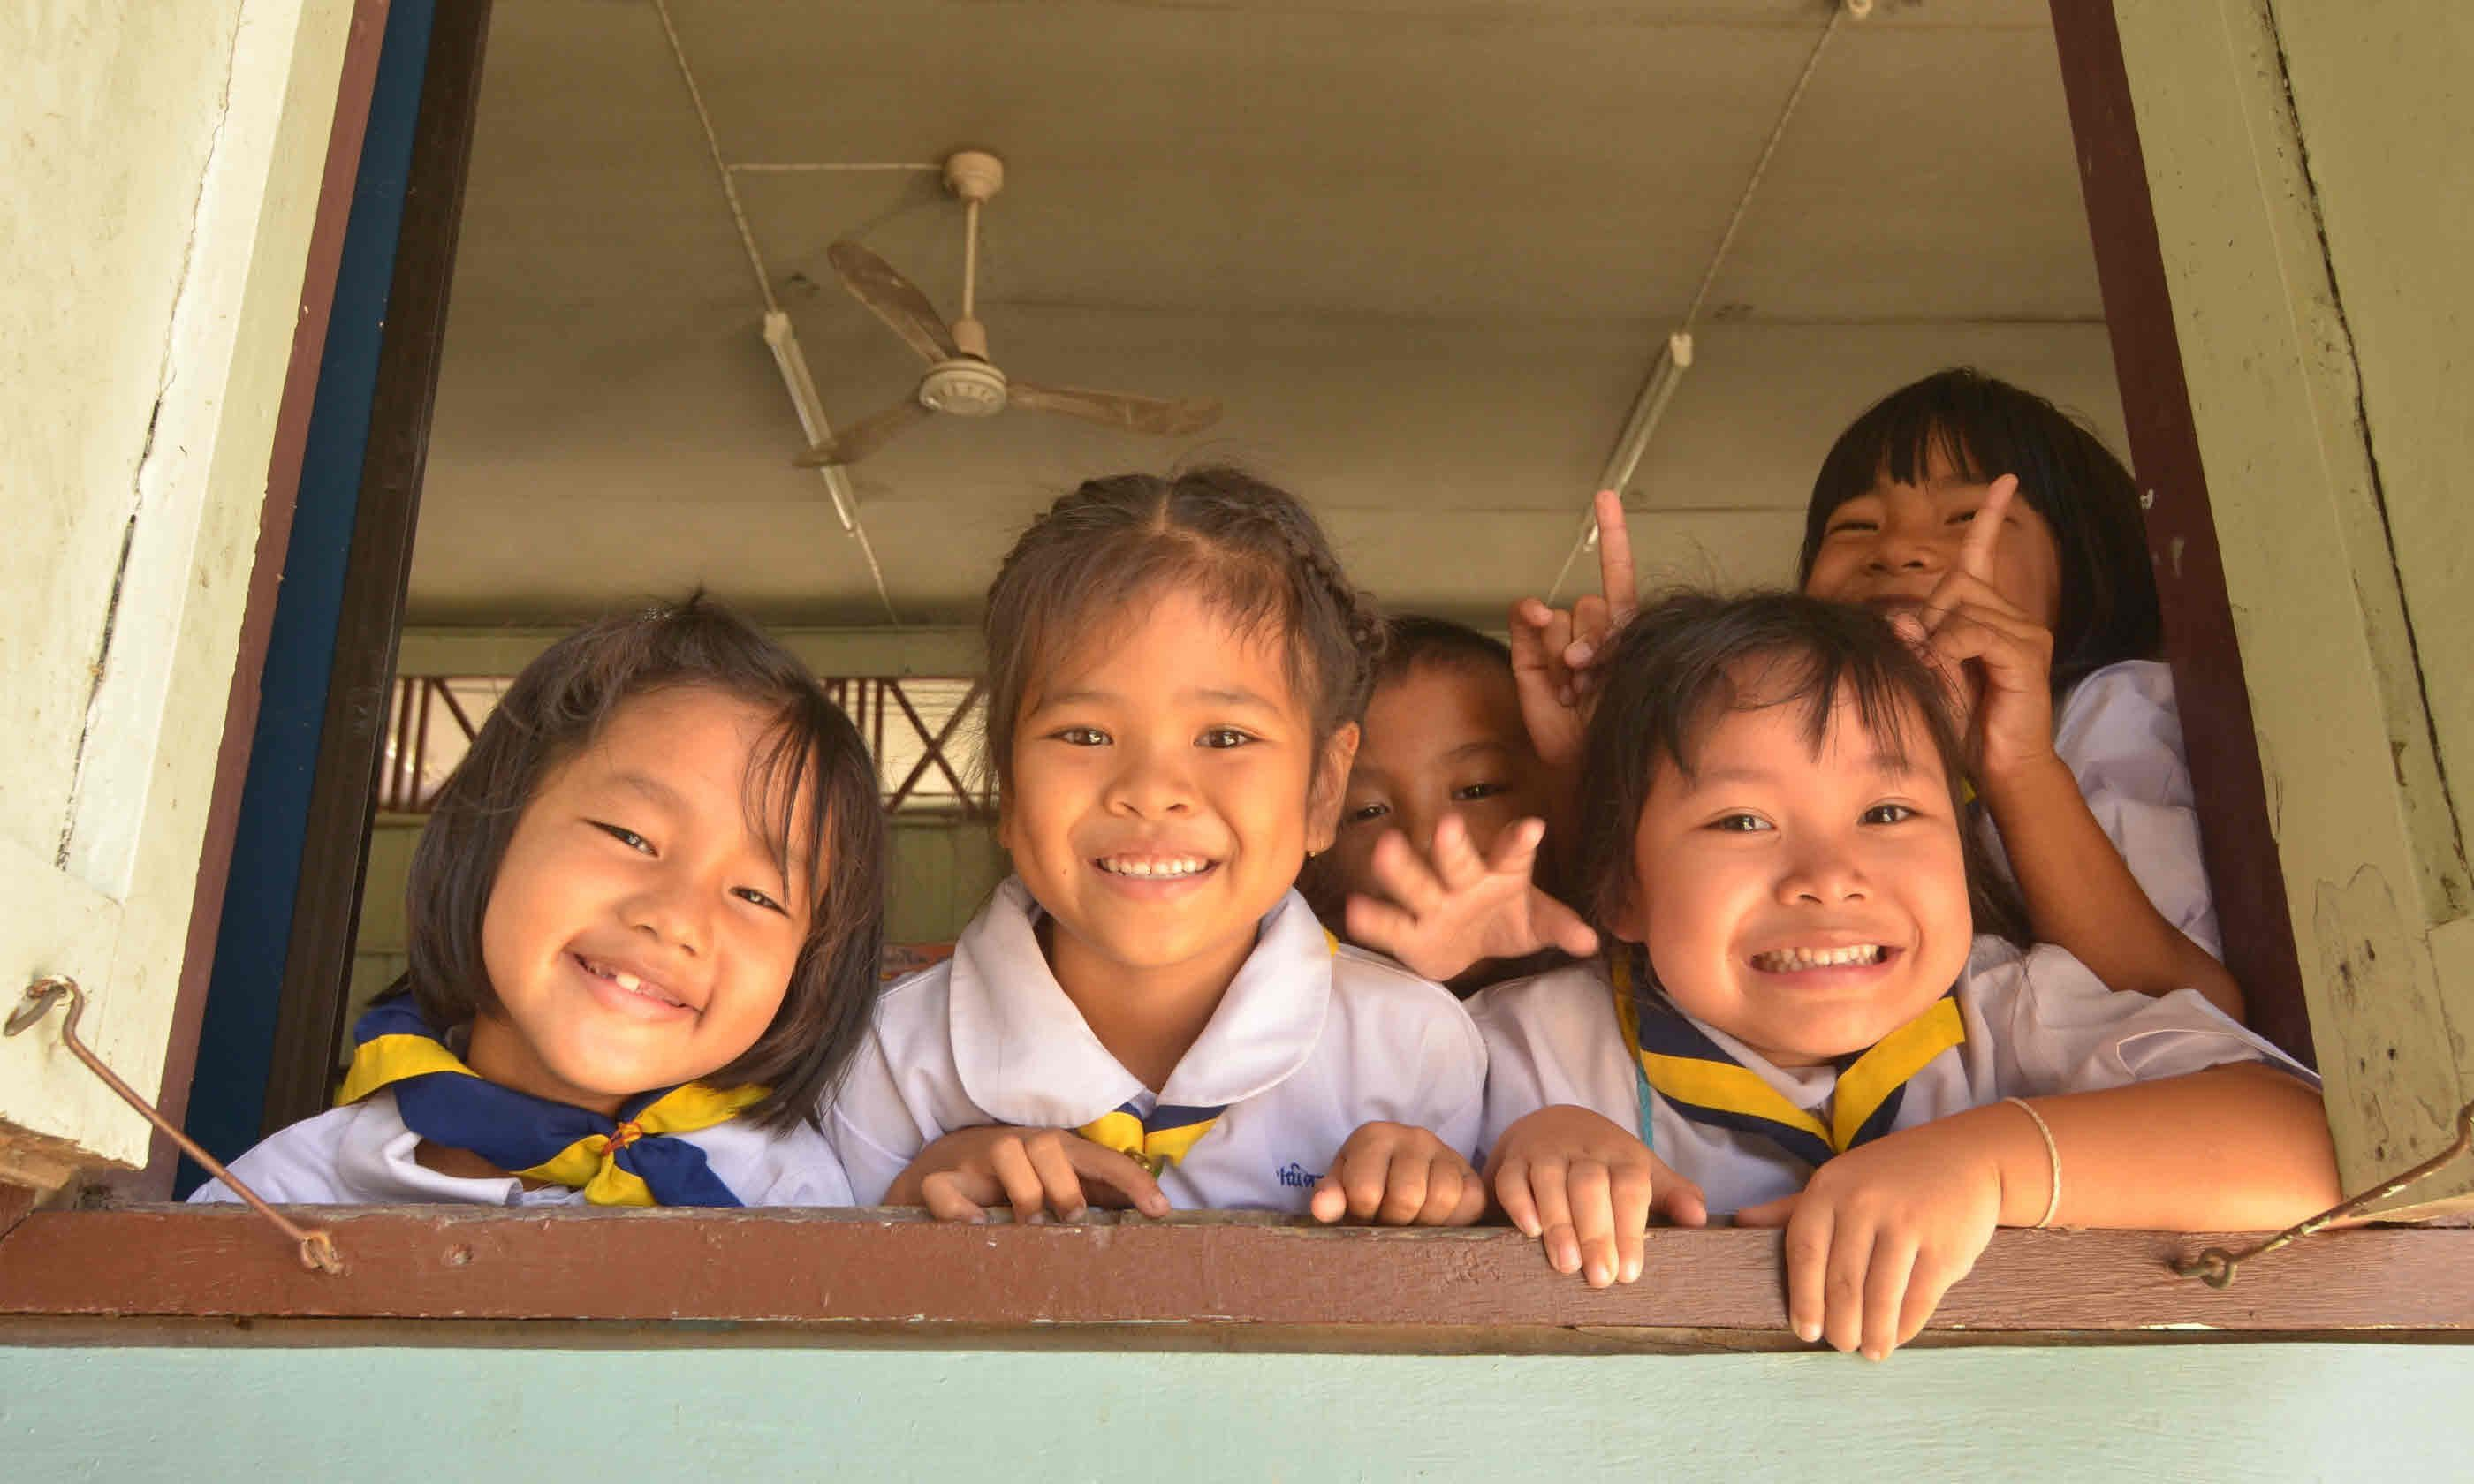 School children in Thailand (Shutterstock)